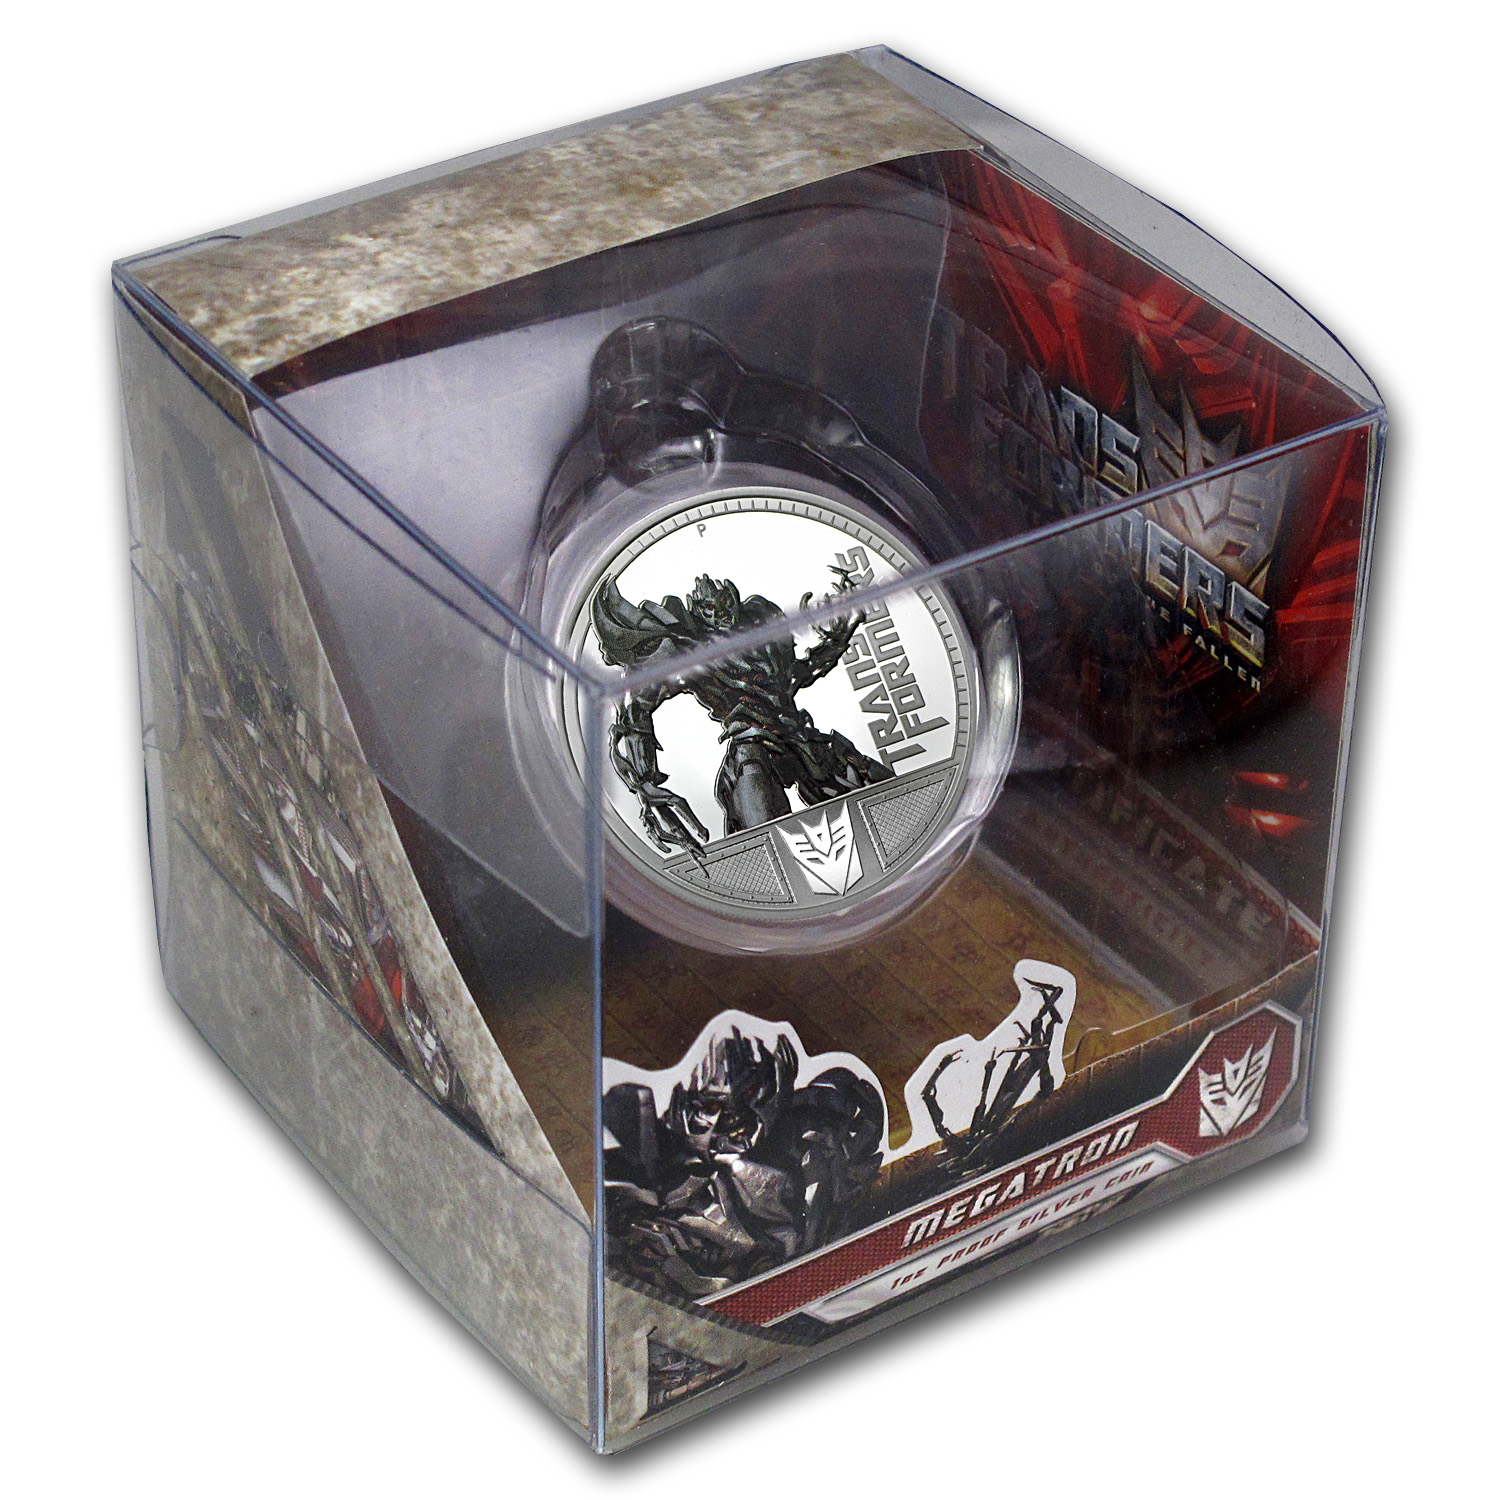 2009 1 oz Proof Silver Megatron- 1st Transformers Series